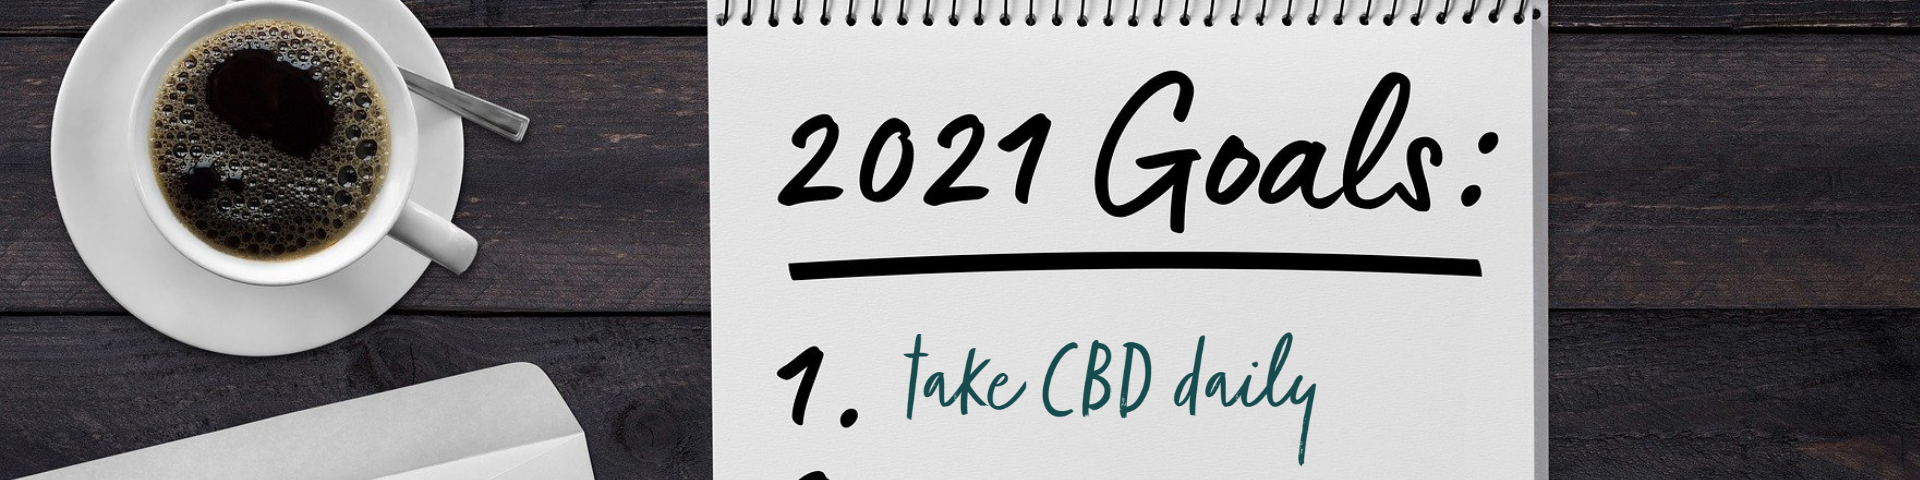 4 Ways CBD Can Help With Your New Year's Resolutions